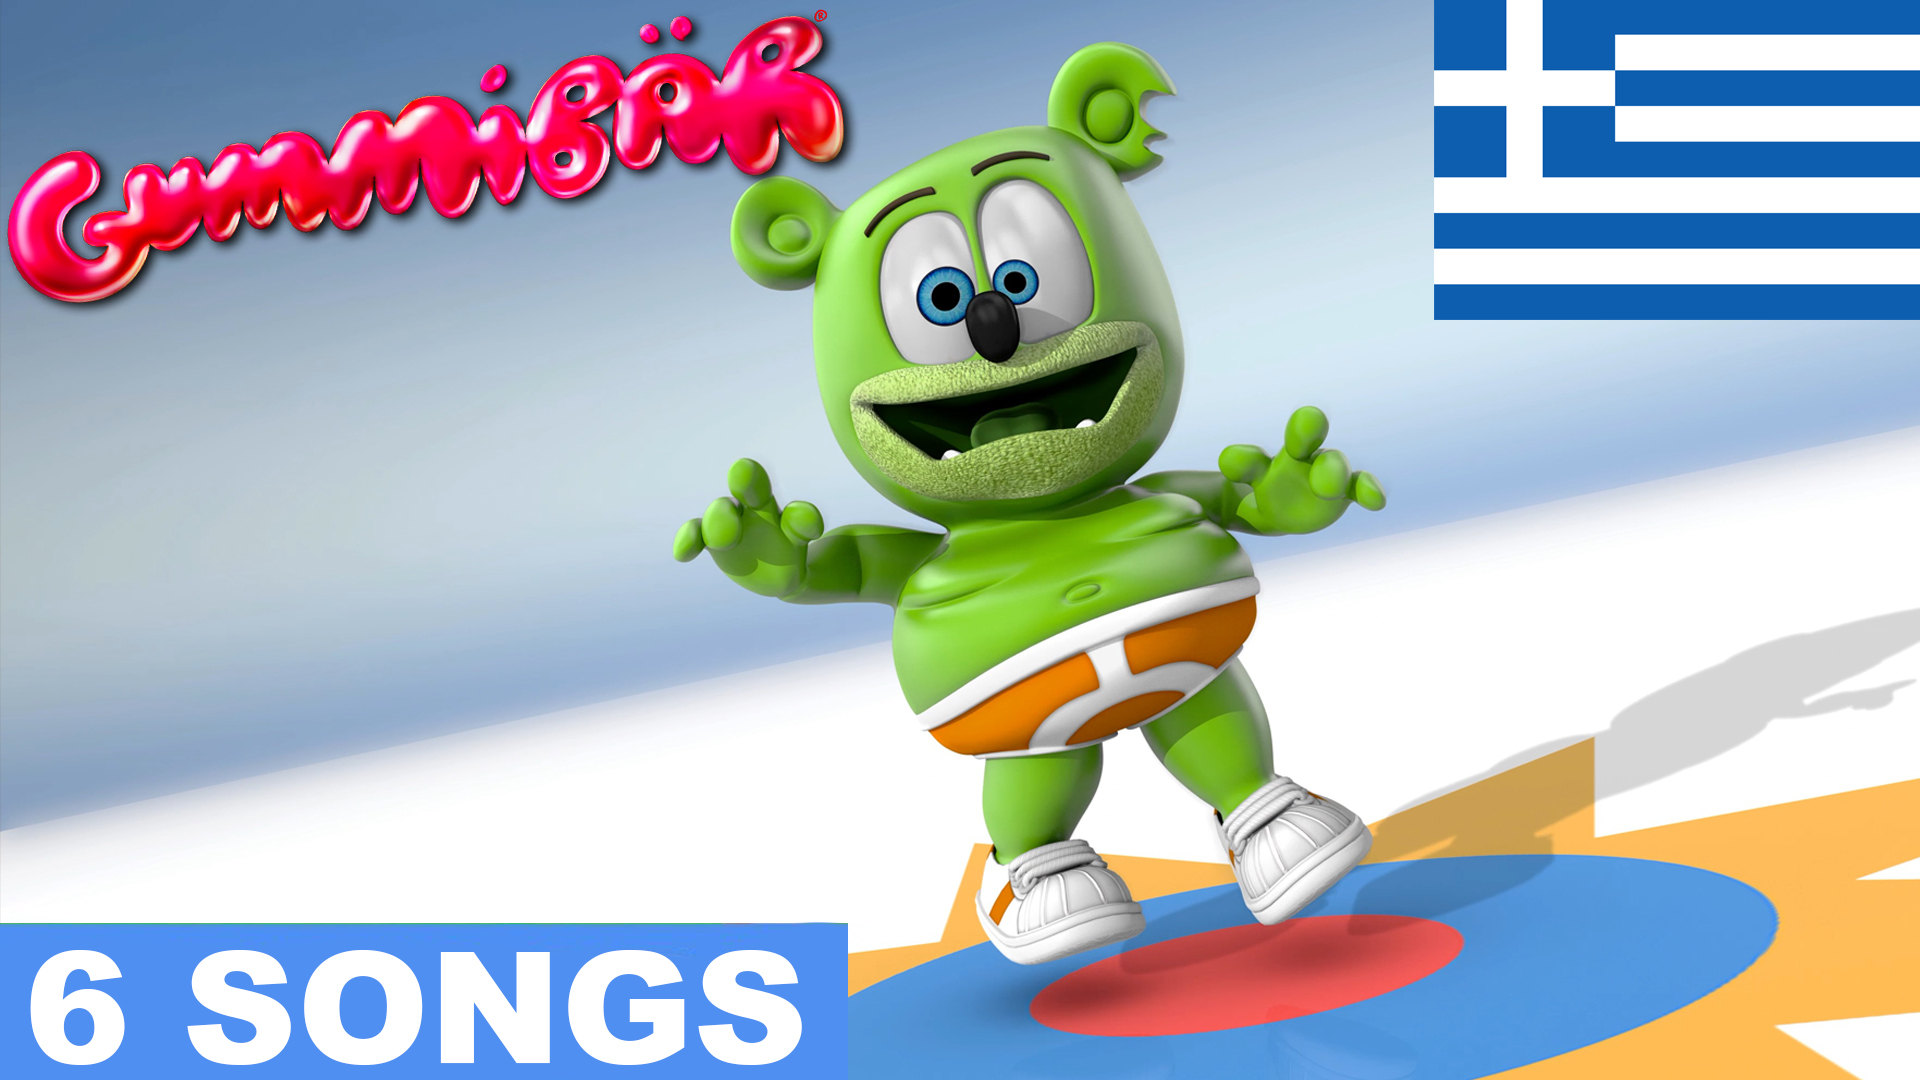 Greek Gummy Bear Songs Gummibar Greek Song Extravaganza TB - Gummibär